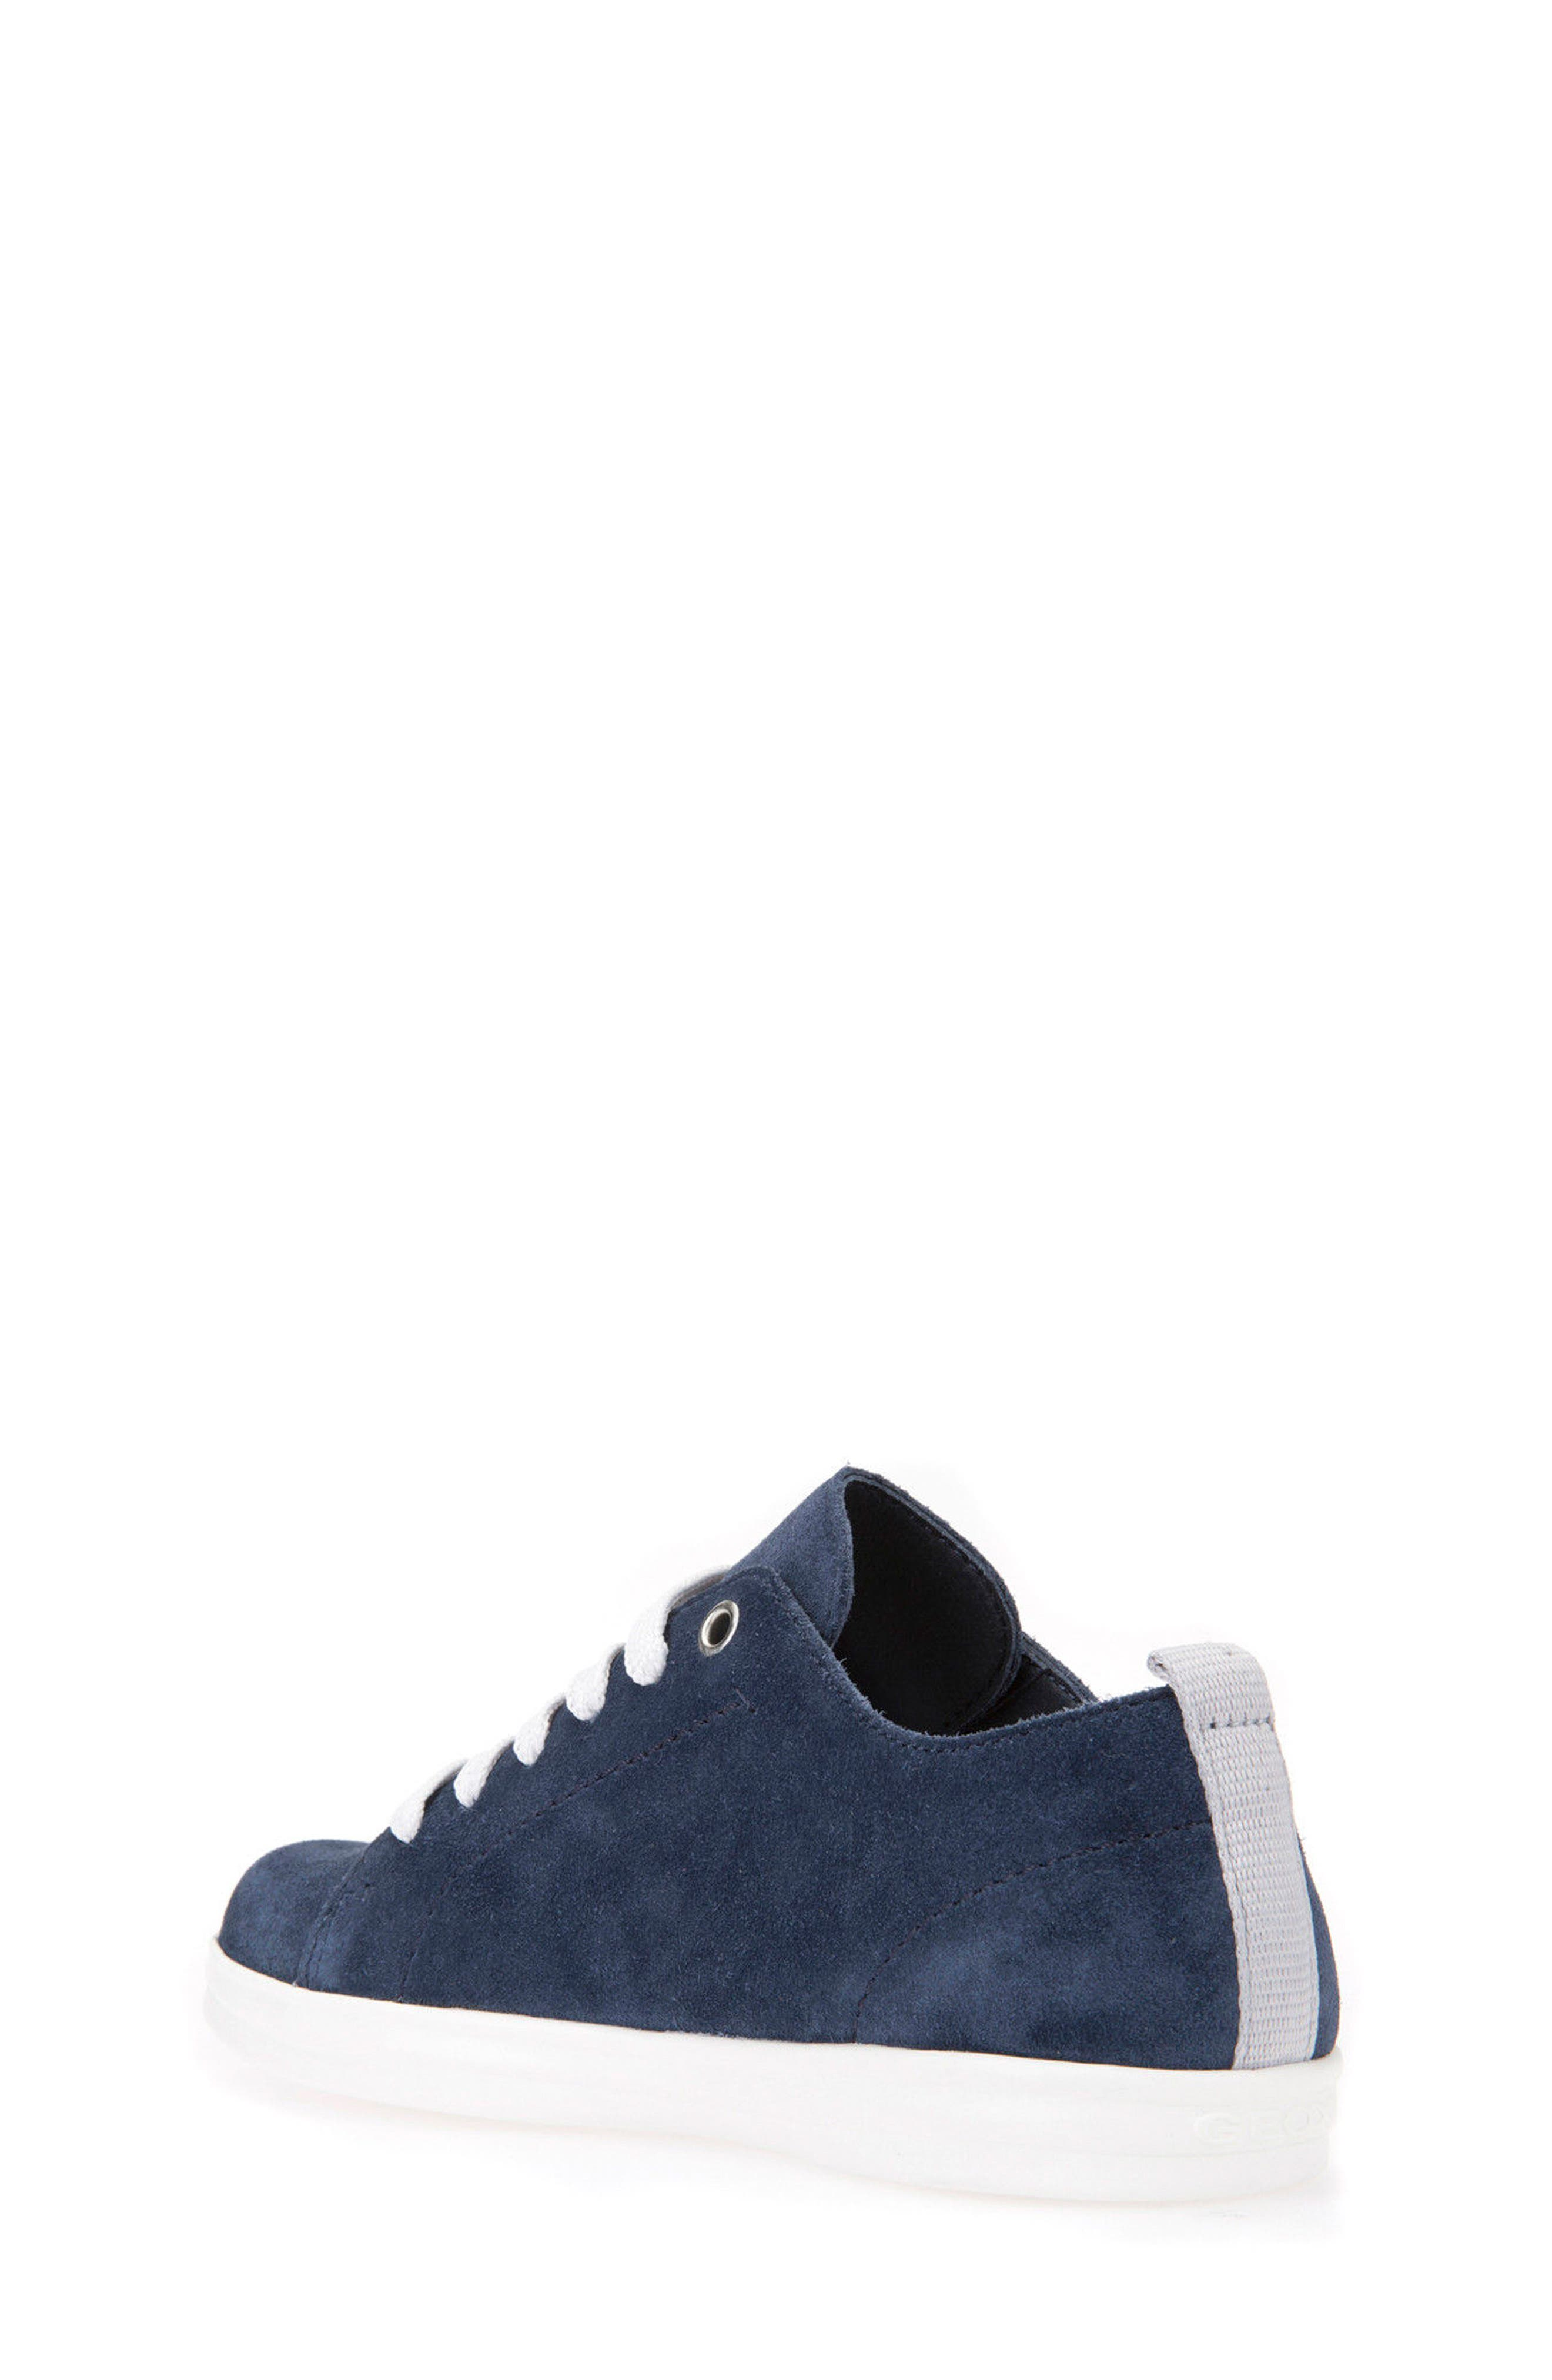 Anthor Low Top Sneaker,                             Alternate thumbnail 2, color,                             Navy